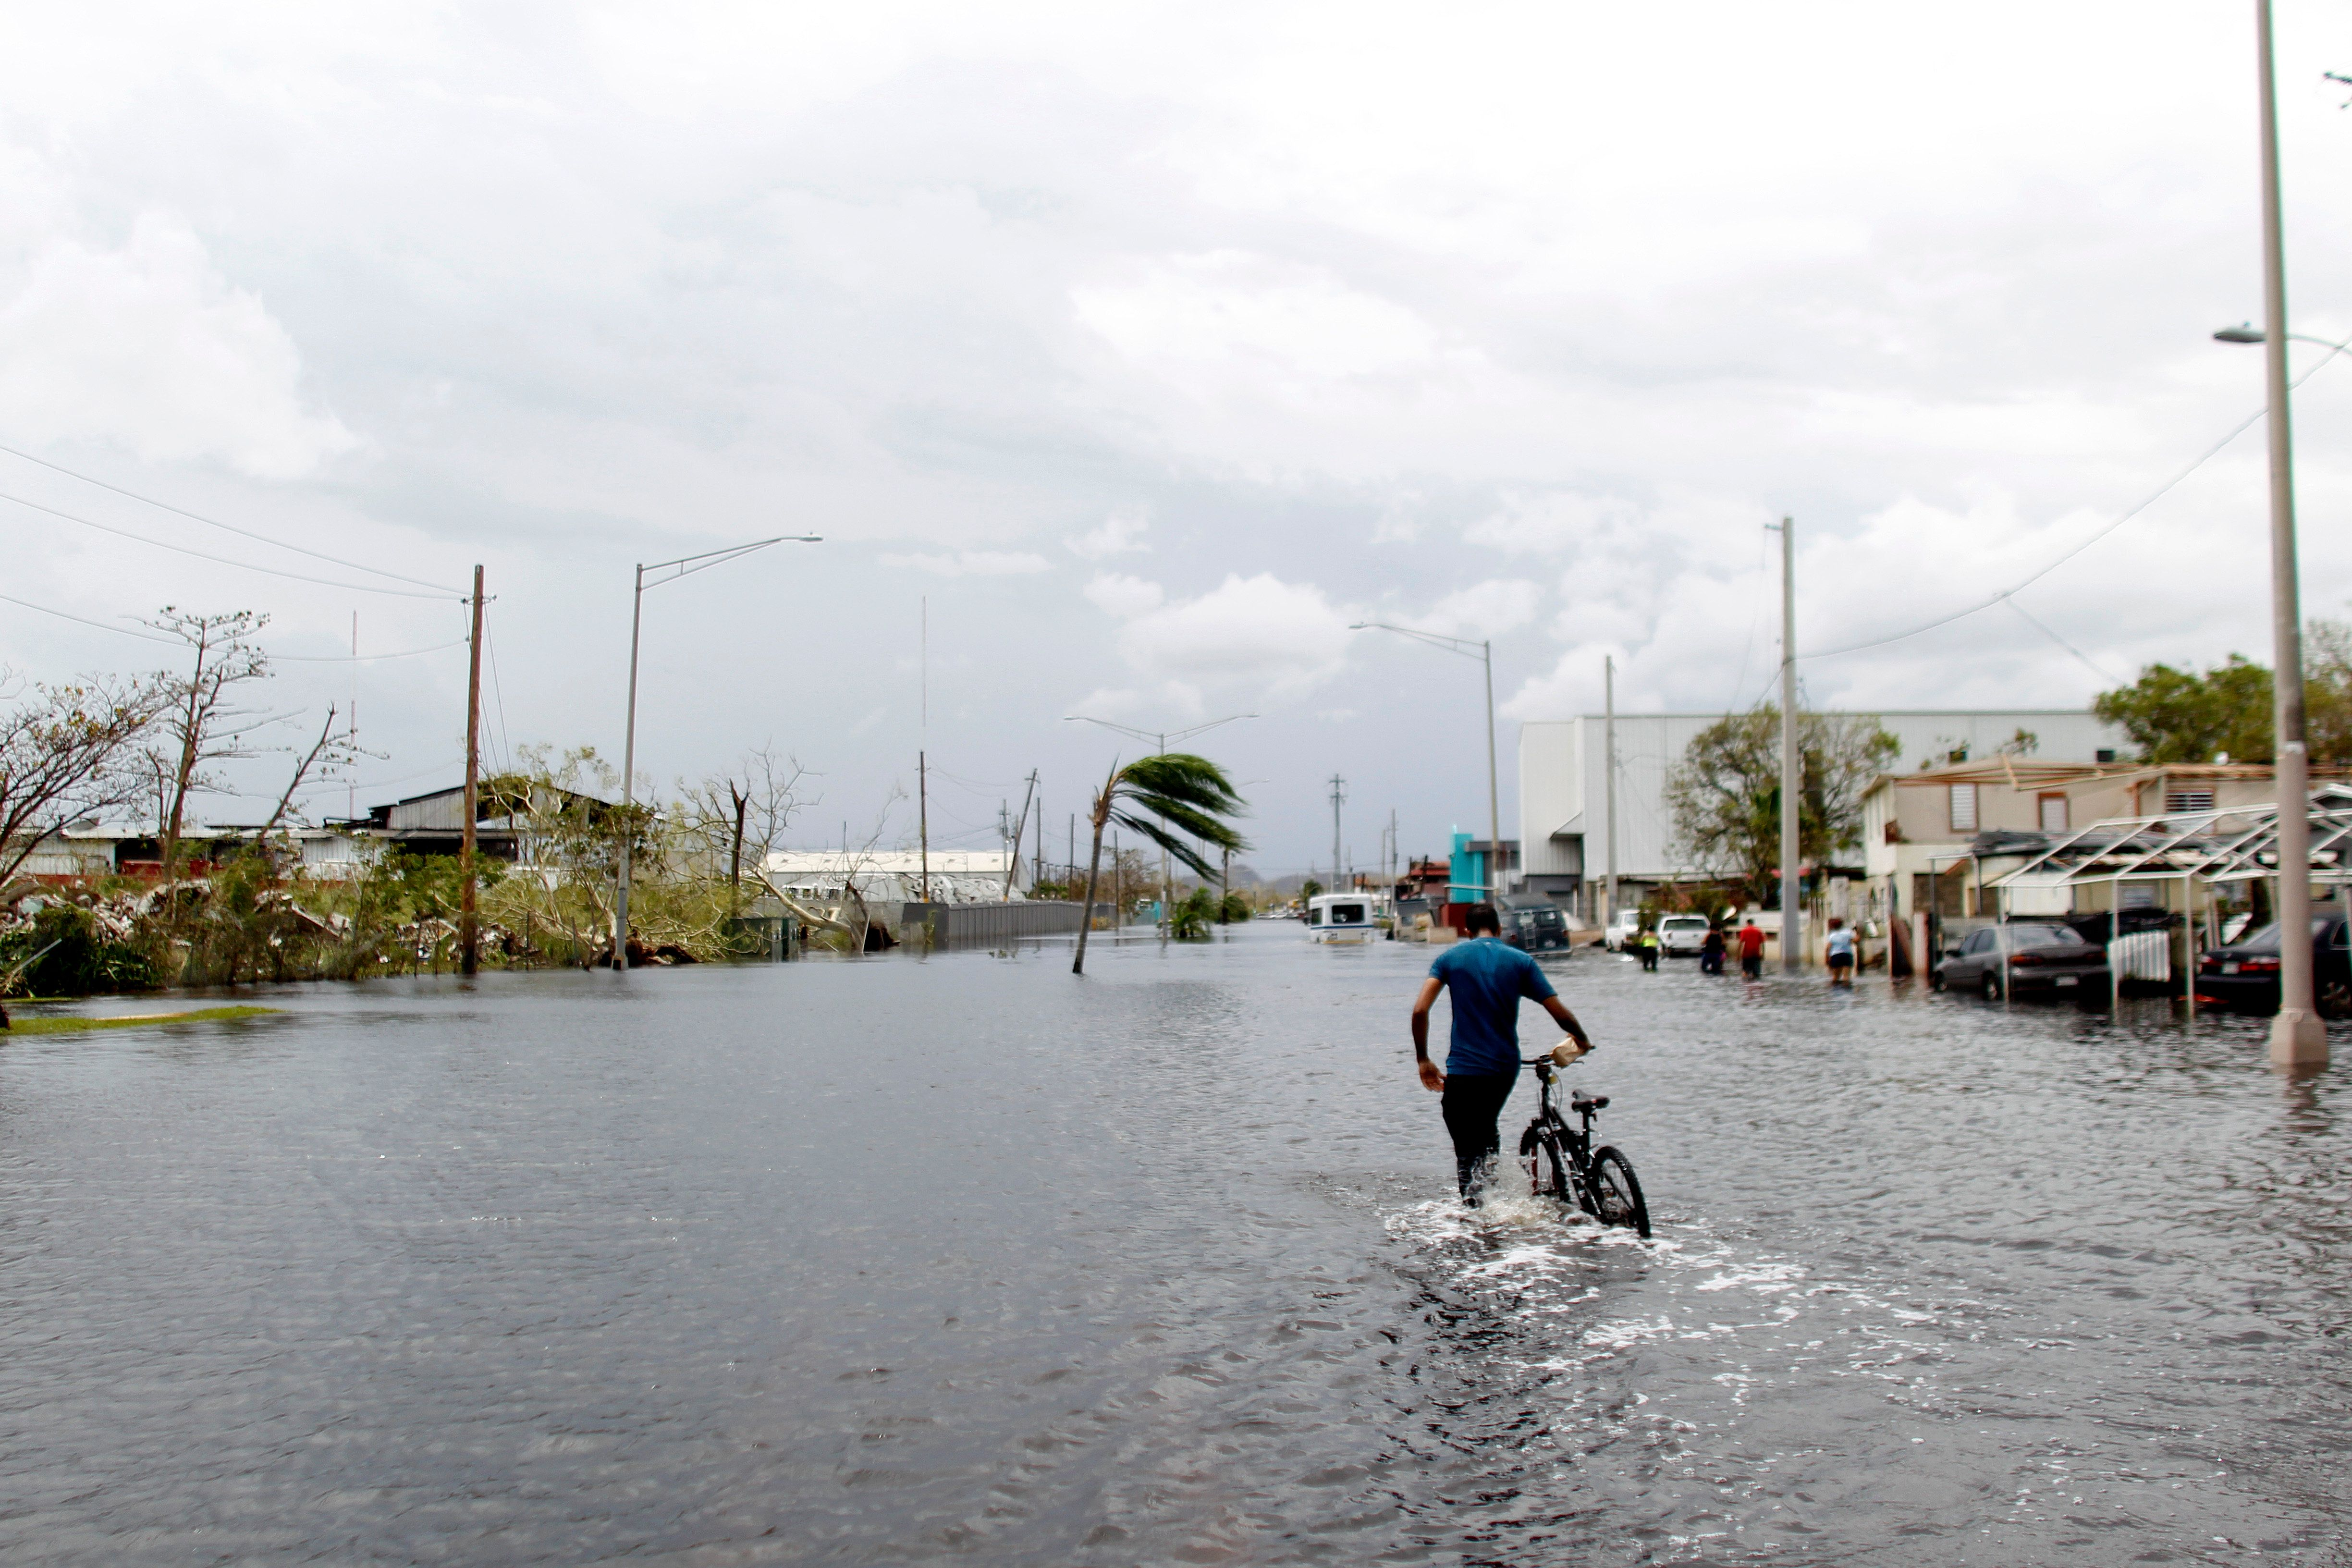 A man wades on the water while pushing his bicycle through a flooded street in the aftermath of Hurricane Maria in Catano, Puerto Rico, Friday, September 22, 2017. Puerto Rico battled dangerous floods Friday after Hurricane Maria ravaged the island, as rescuers raced against time to reach residents trapped in their homes and the death toll climbed to 33. Puerto Rico Governor Ricardo Rossello called Maria the most devastating storm in a century after it destroyed the US territory's electricity and telecommunications infrastructure.  / AFP PHOTO / Ricardo ARDUENGO        (Photo credit should read RICARDO ARDUENGO/AFP/Getty Images)